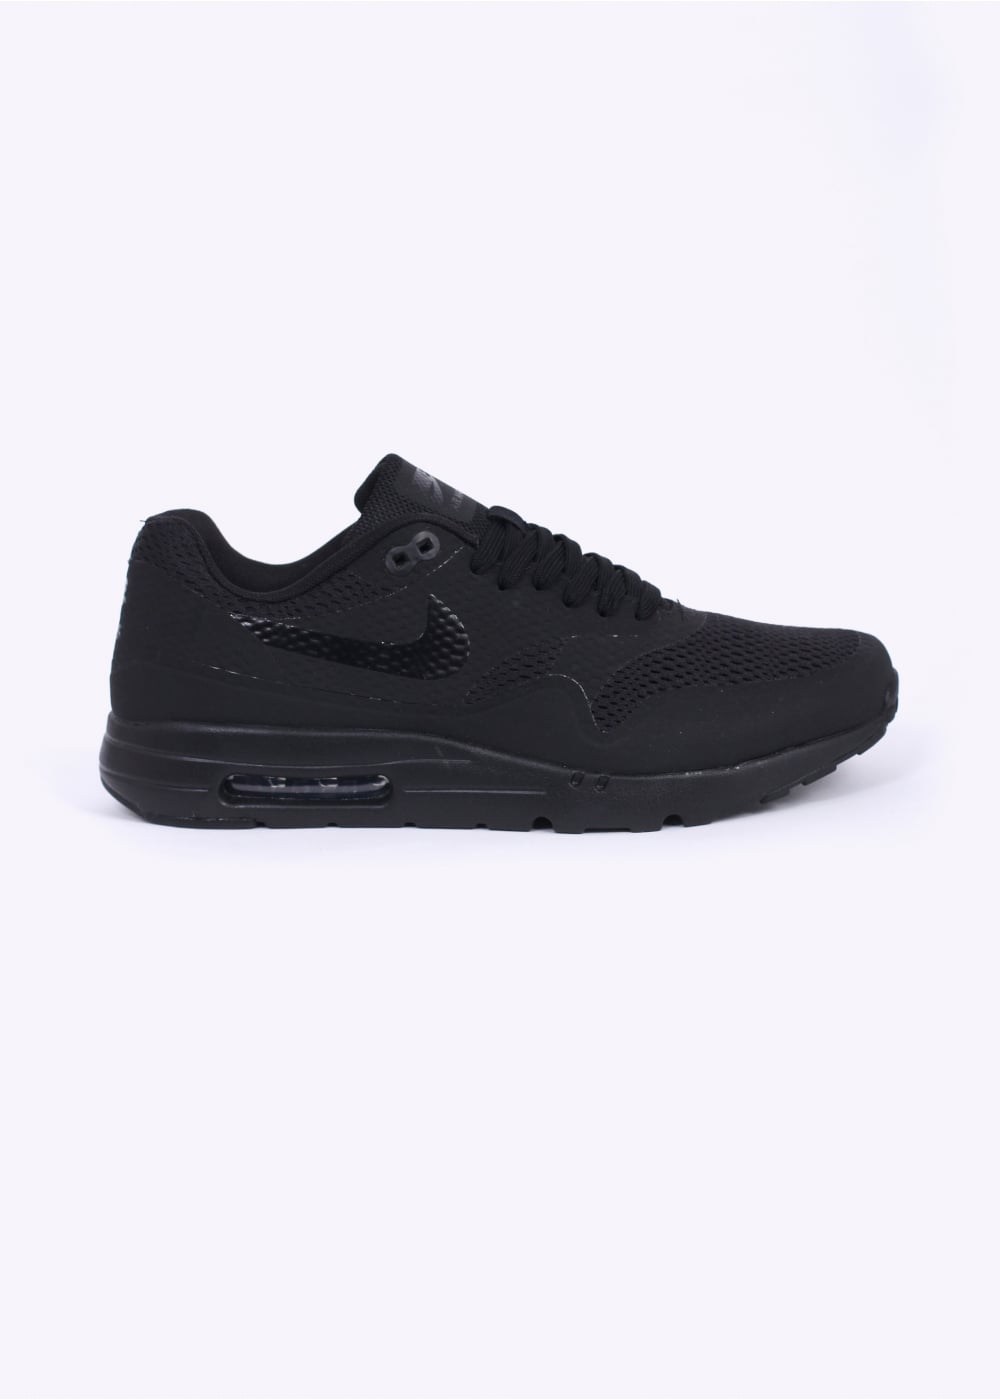 first rate 5a1a1 f38a4 Nike Air Max 1 Ultra Essential Trainers - Black